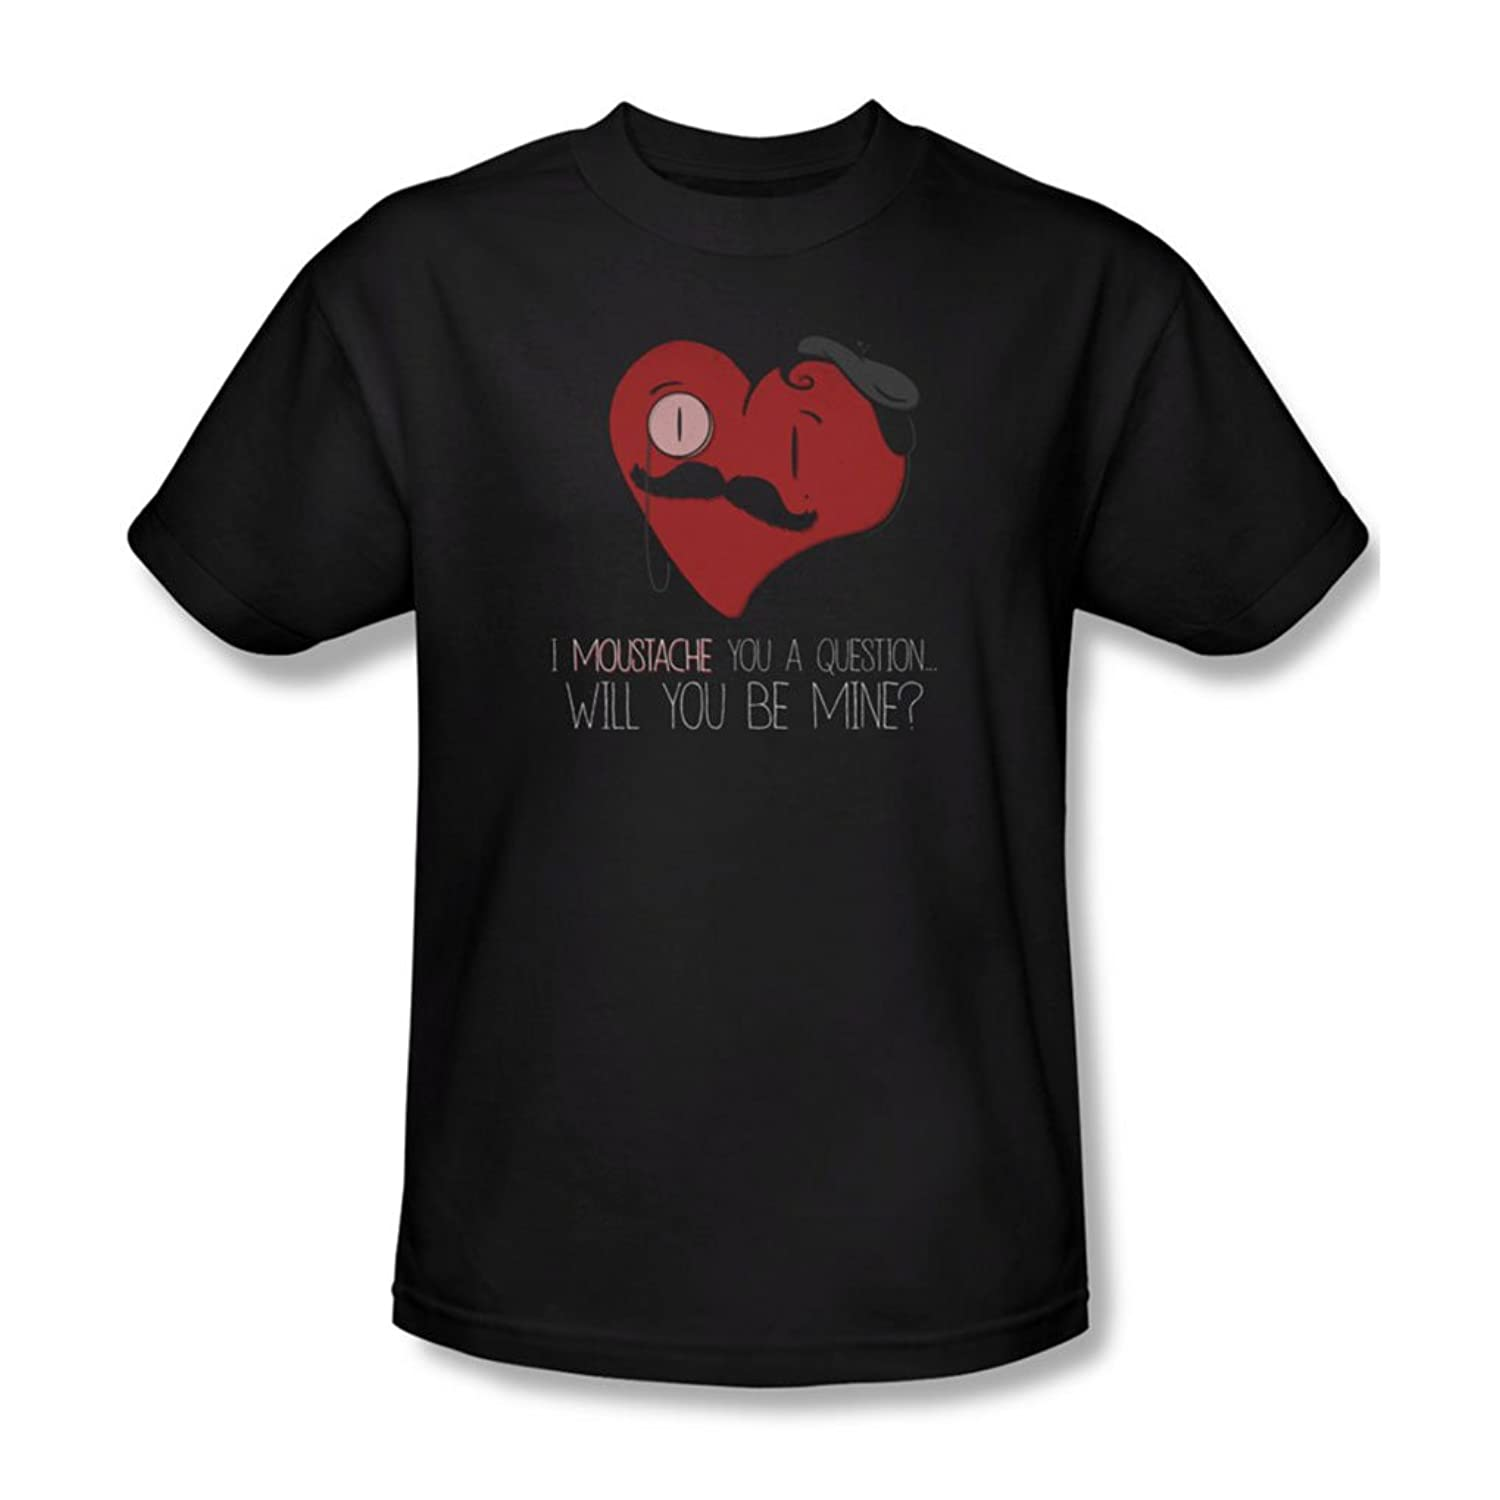 Popping The Question - Mens T-Shirt In Black